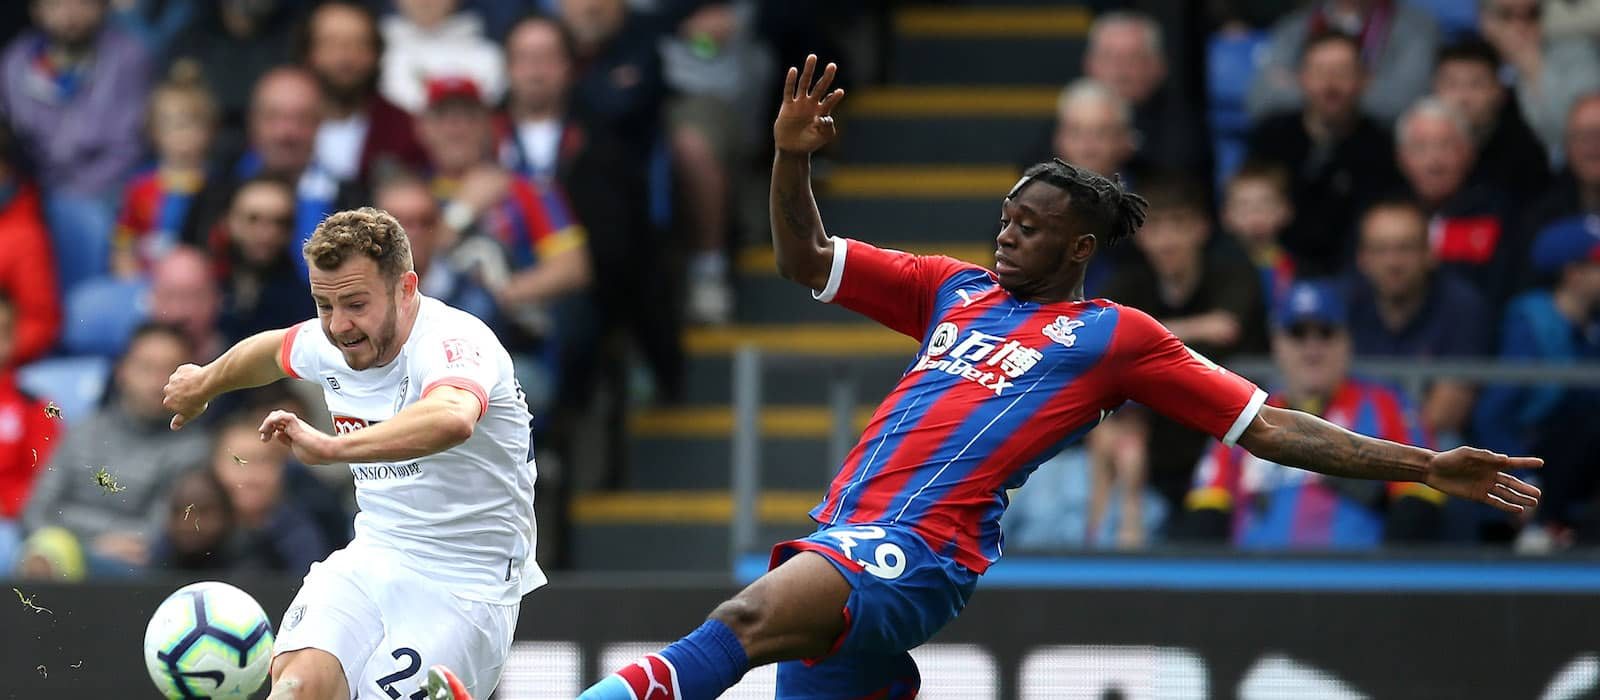 Manchester United on the brink of sealing Aaron Wan-Bissaka transfer